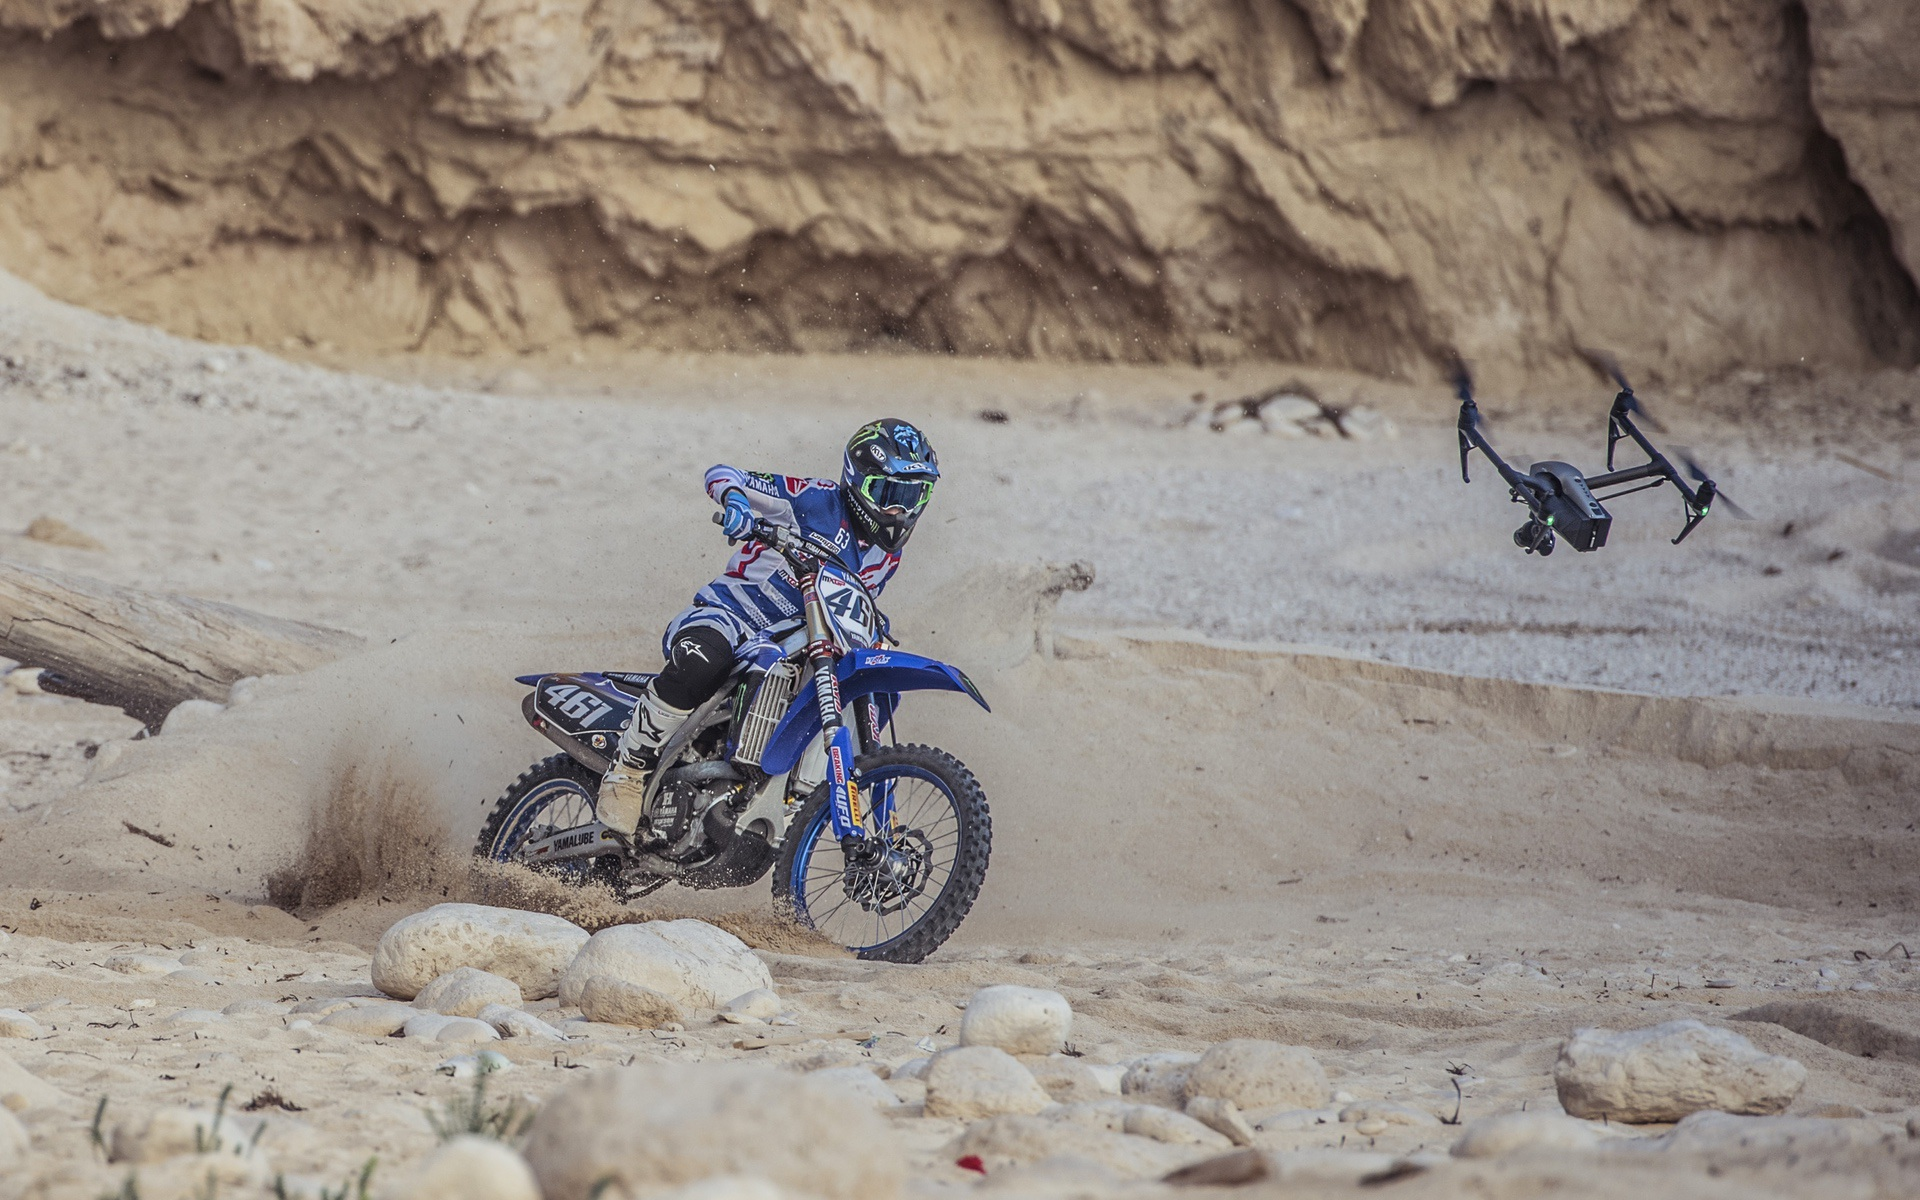 Romain_Febvre_Monster_Energy_Shipwreck_0066